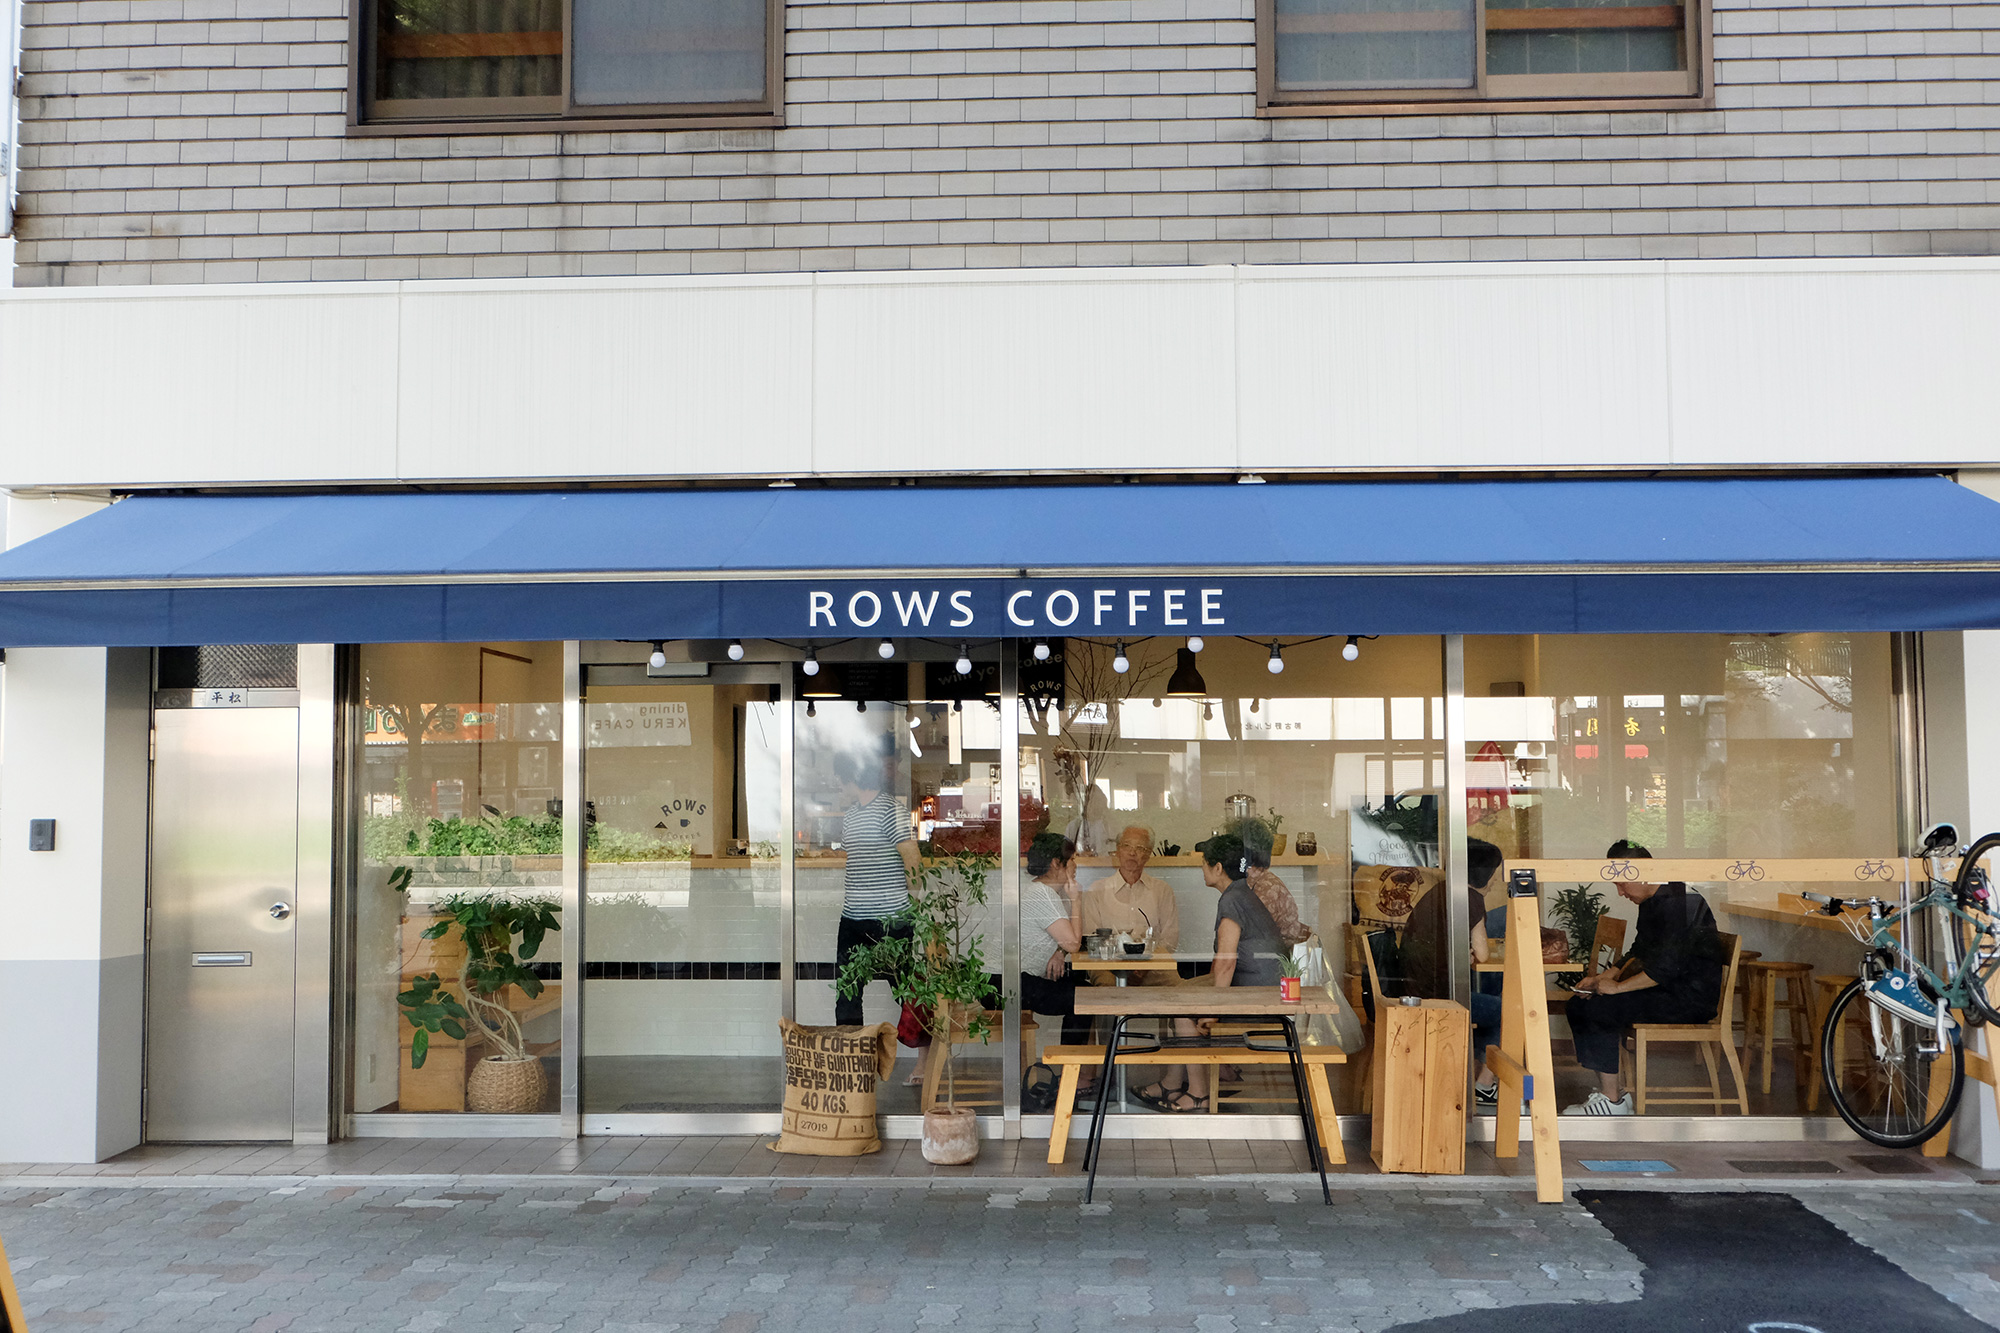 ROWS COFFEE (ロウズ コーヒー) 名古屋